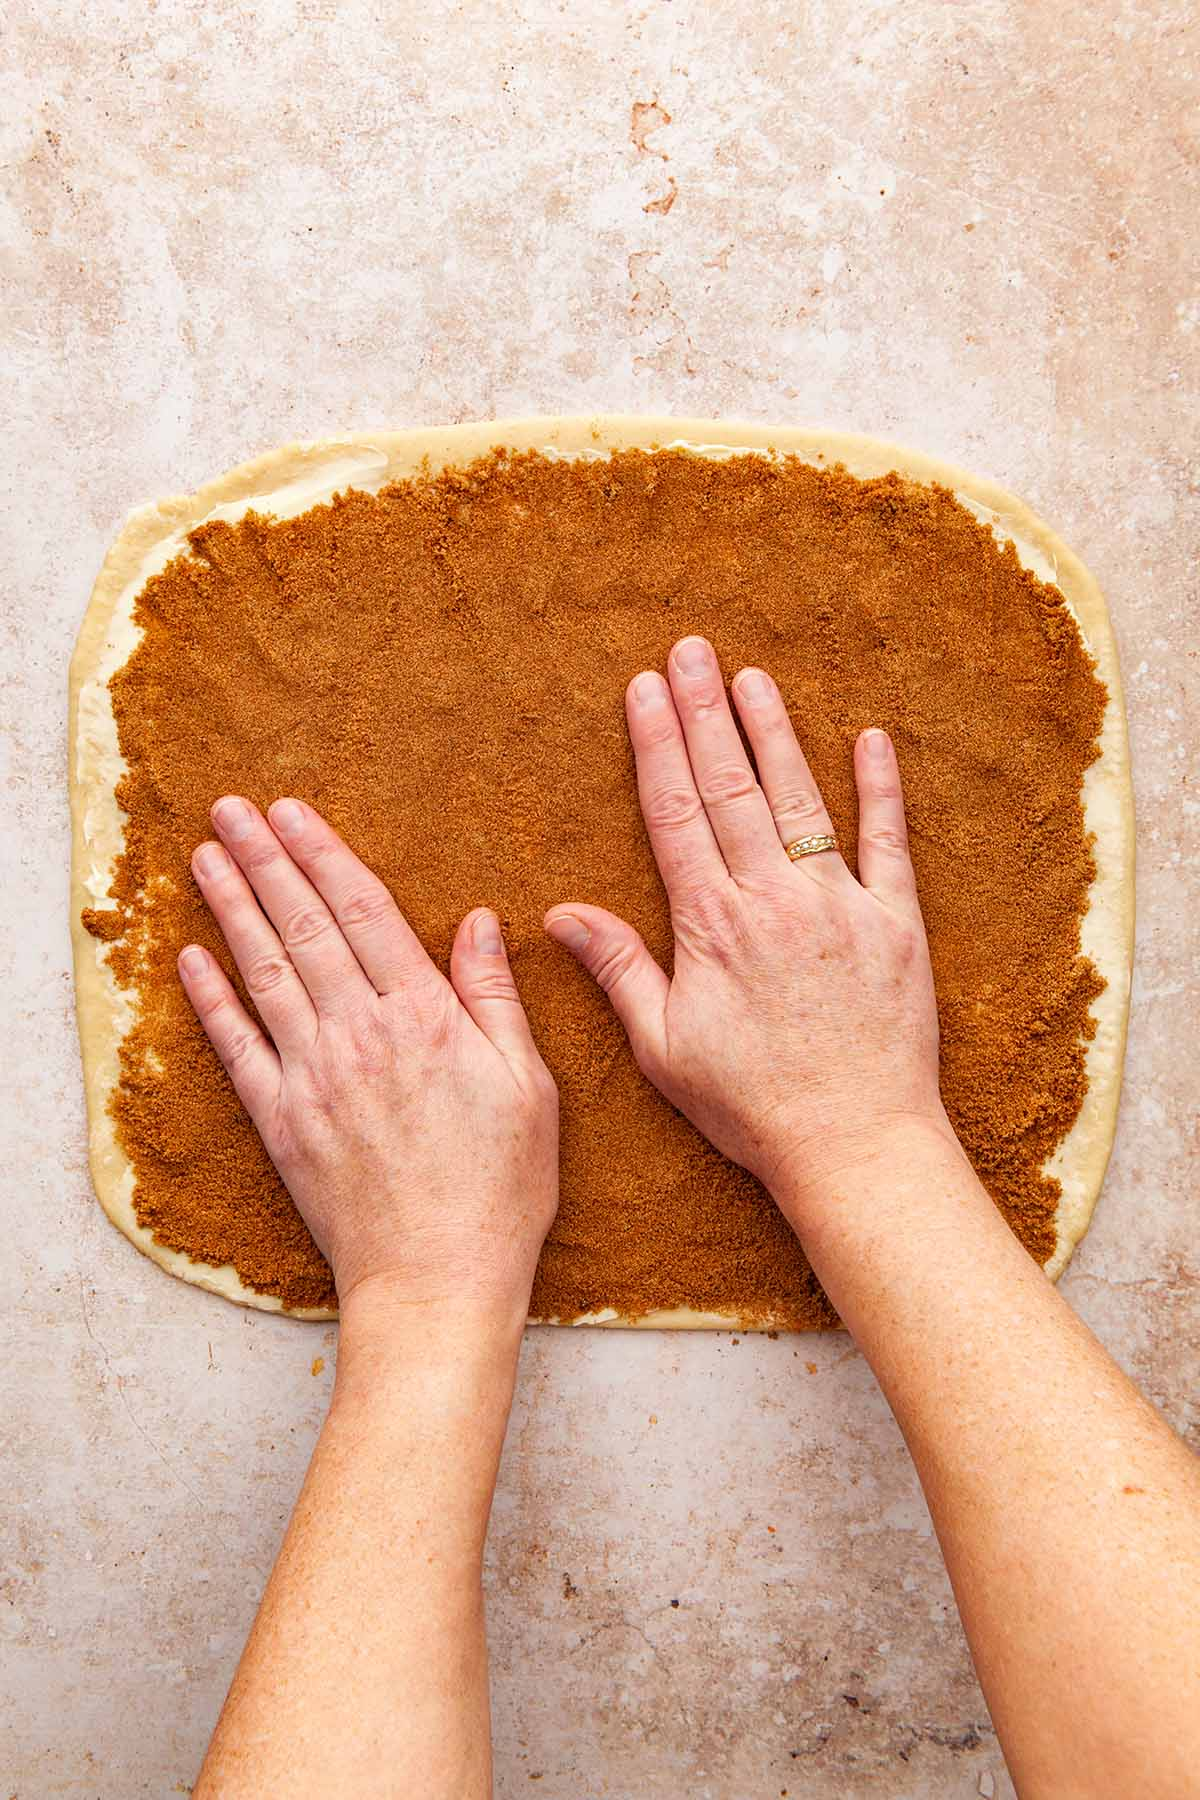 Hands pressing brown sugar and spice onto a large rolled out rectangle of dough.